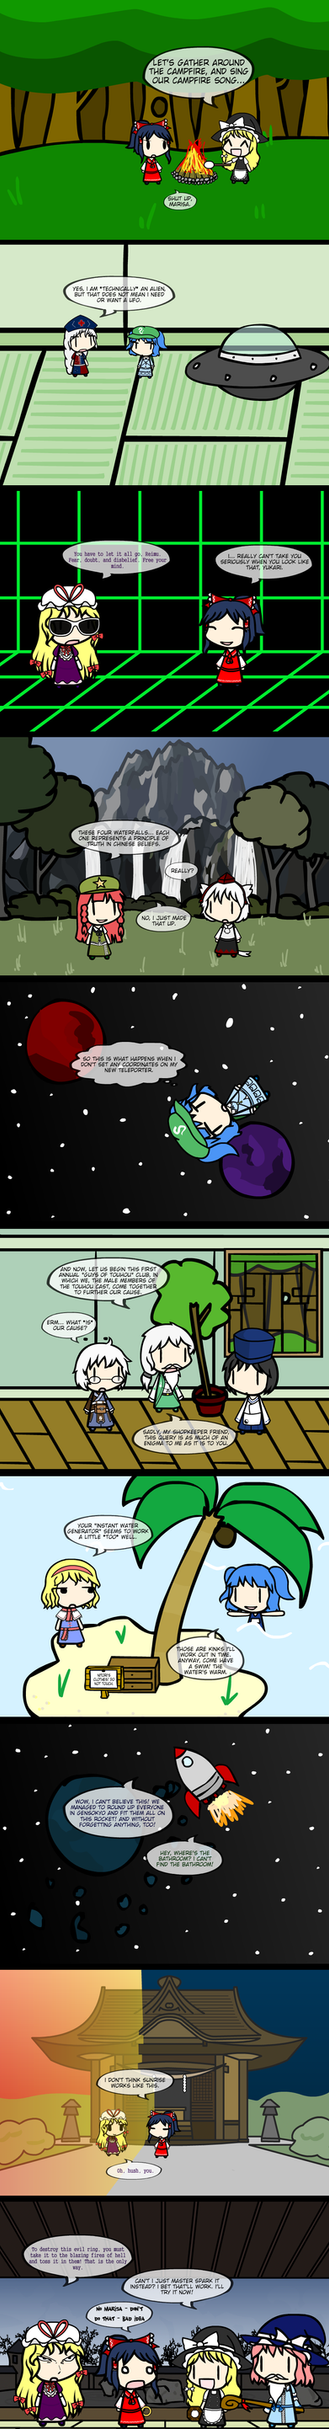 Touhou Oneshots Volume 1 by SubterraneanGamer